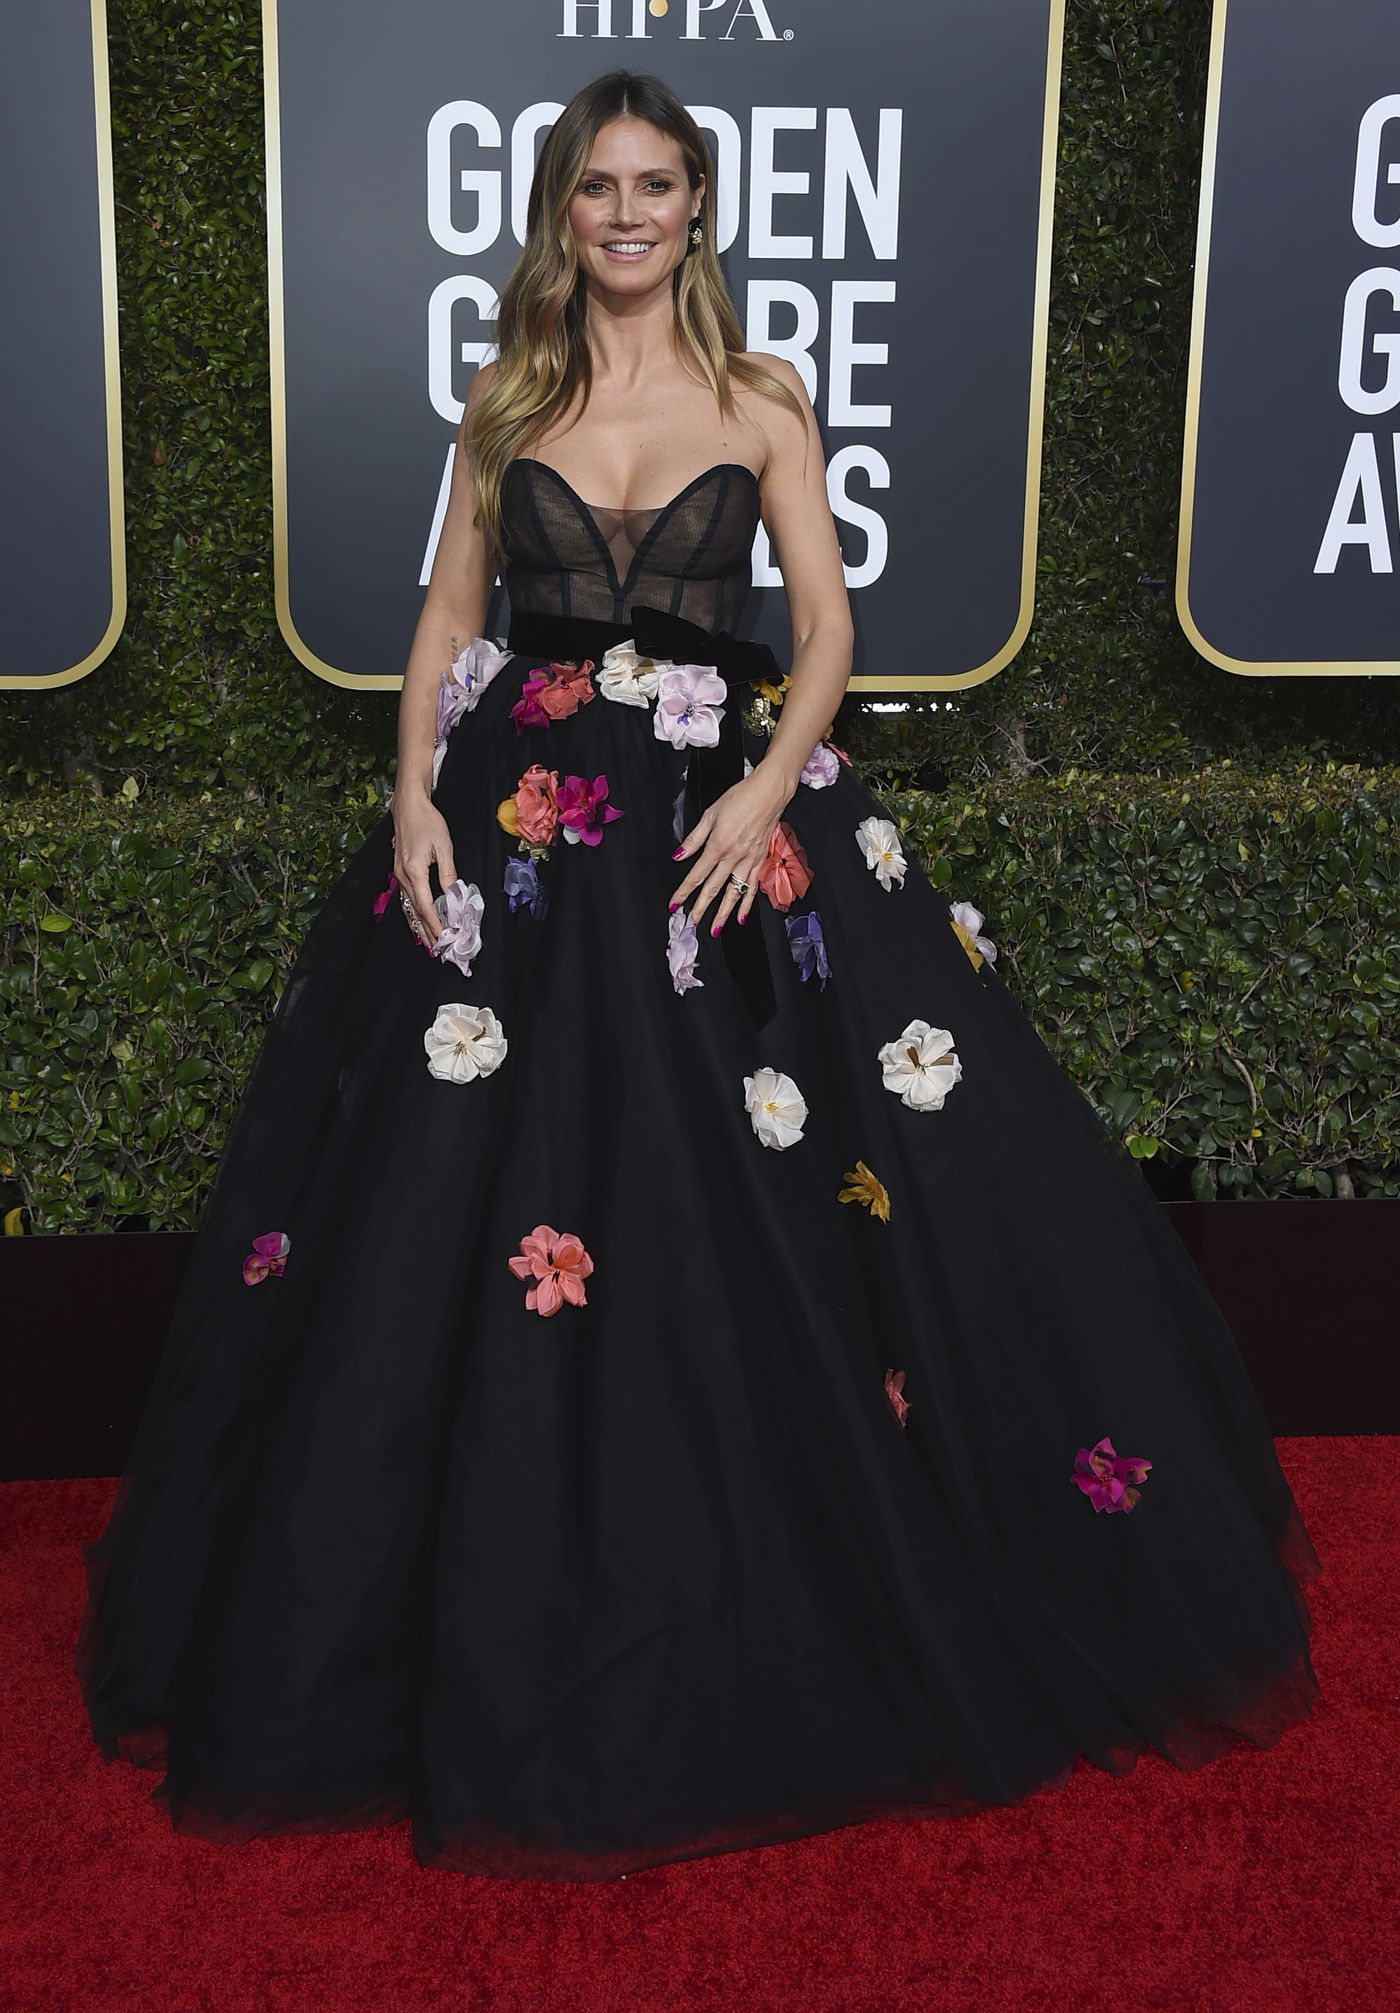 Heidi Klum arrives at the 76th annual Golden Globe Awards at the Beverly Hilton Hotel on